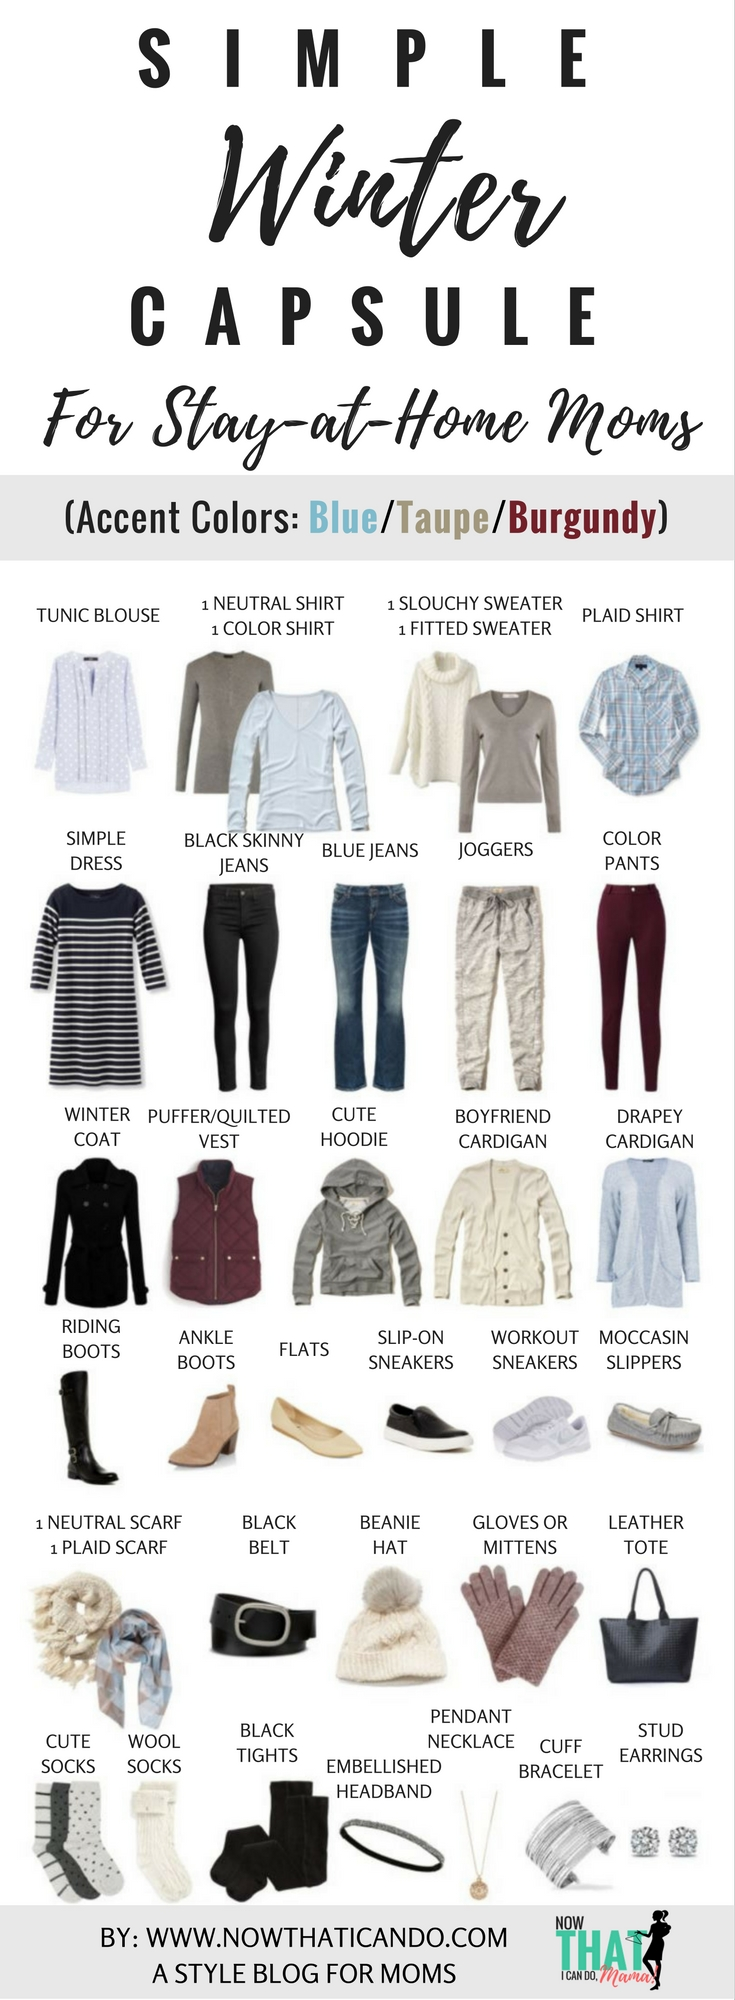 Effortless style is at your fingertips with this carefully designed wardrobe plan for busy moms! The colors are so beautiful! Blue, taupe, burgundy, olive... it's hard to decide which version I like better! The blog post has some amazing tips and the steps for coming up with all 130 plus outfit variations. There is also a free clothing planner checklist that you can print out and 7 free outfit layout ideas to get you started.